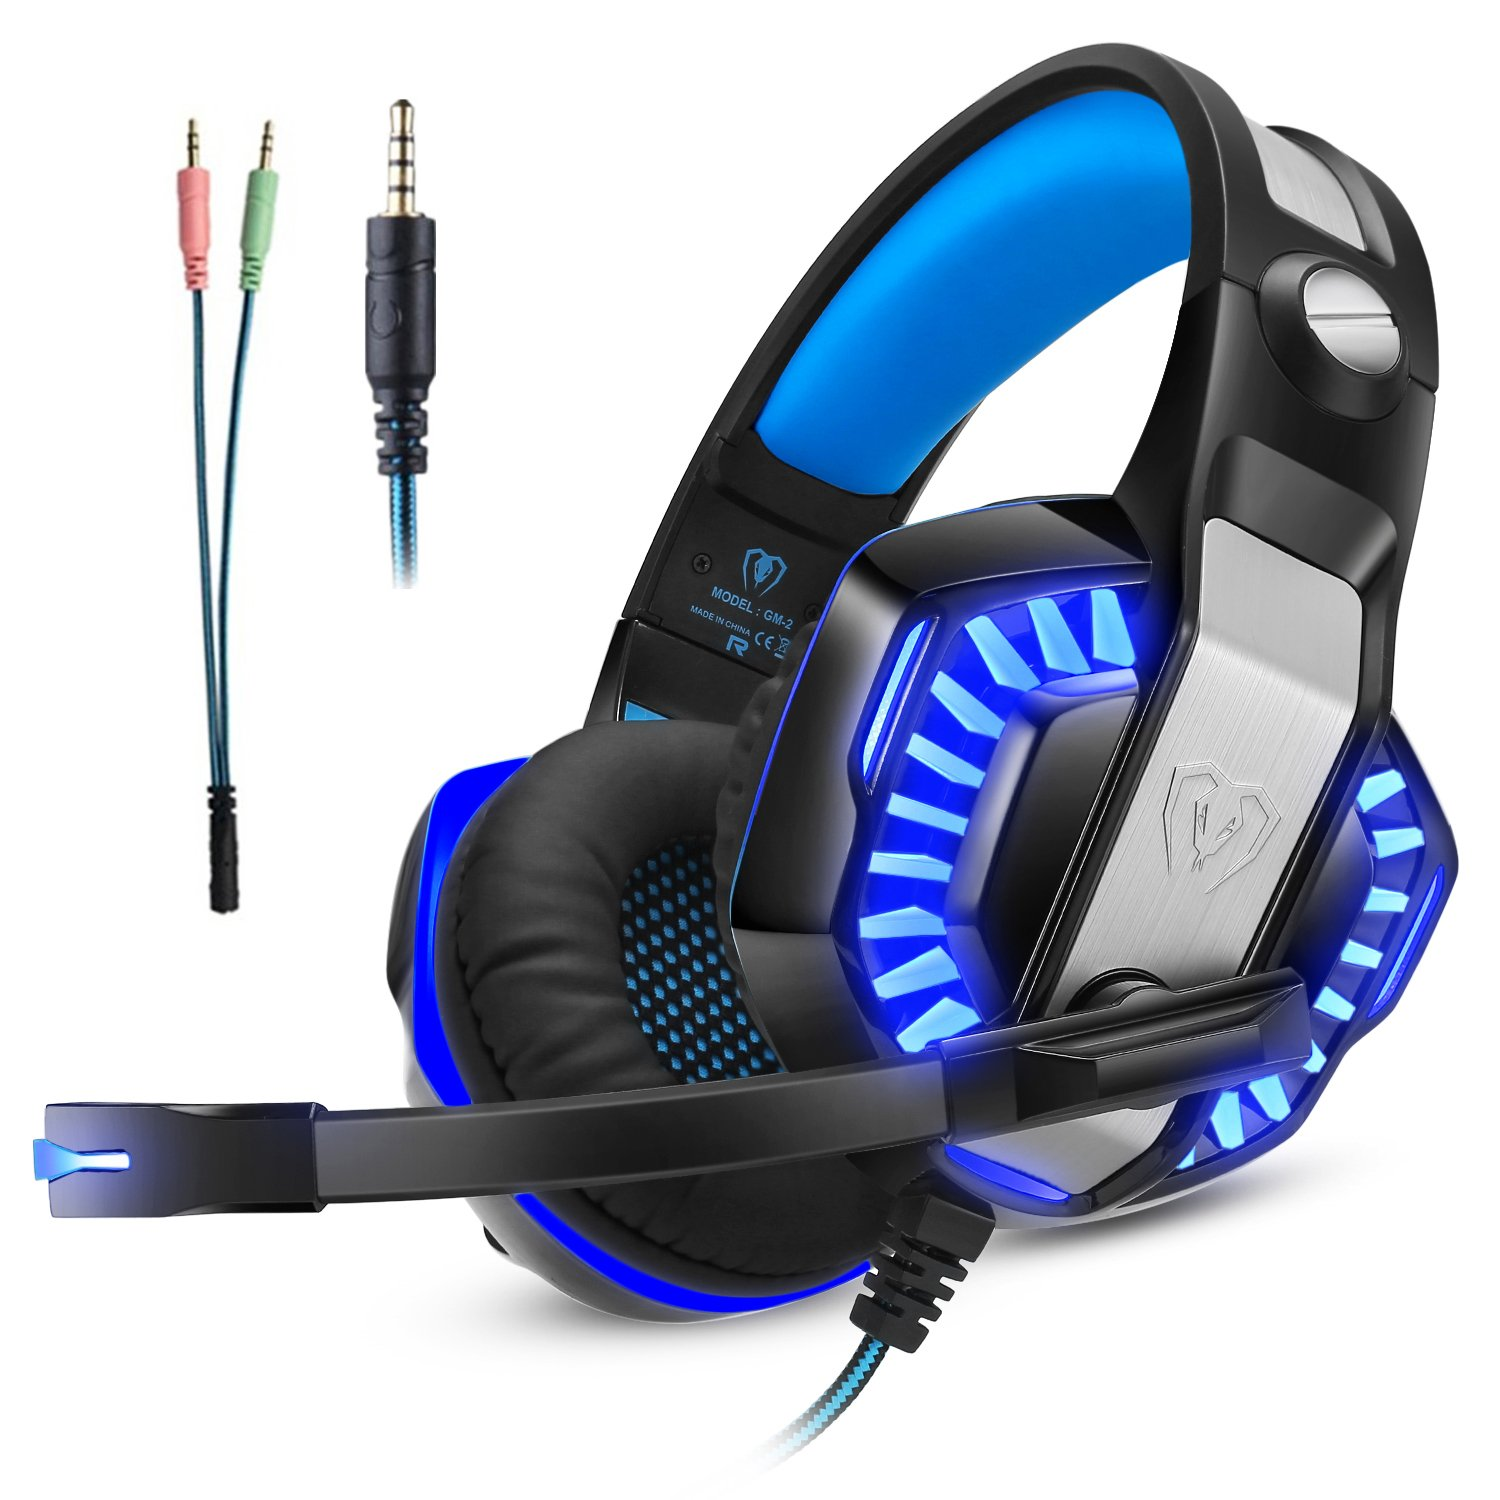 Gaming Headset Xbox One Ps4, Gamer Headphone Mic, Over Ear Bass Stereo, Noise Reduction Microphone, LED Light Volume Control PC, Nintendo Switch/3DS, Laptop, Mac, Pad, Smartphone